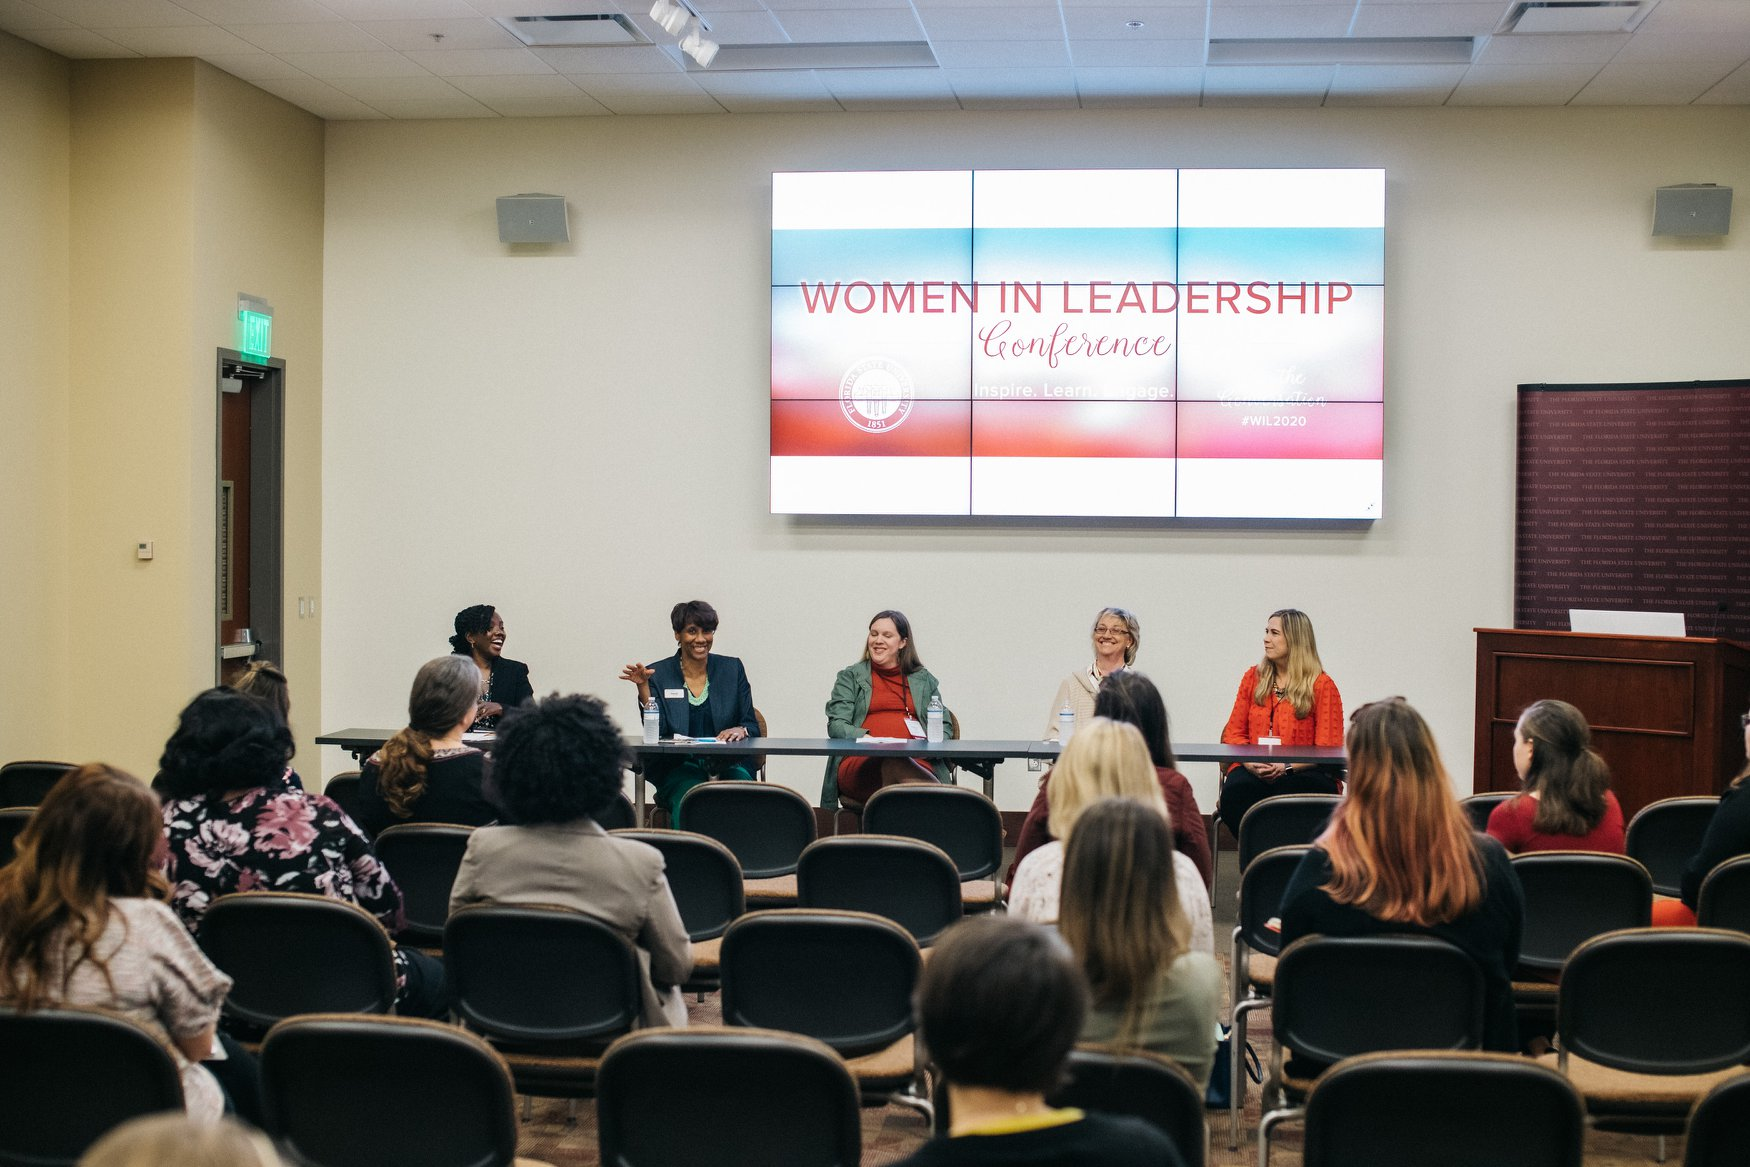 Workshop at the Women in Leadership conference